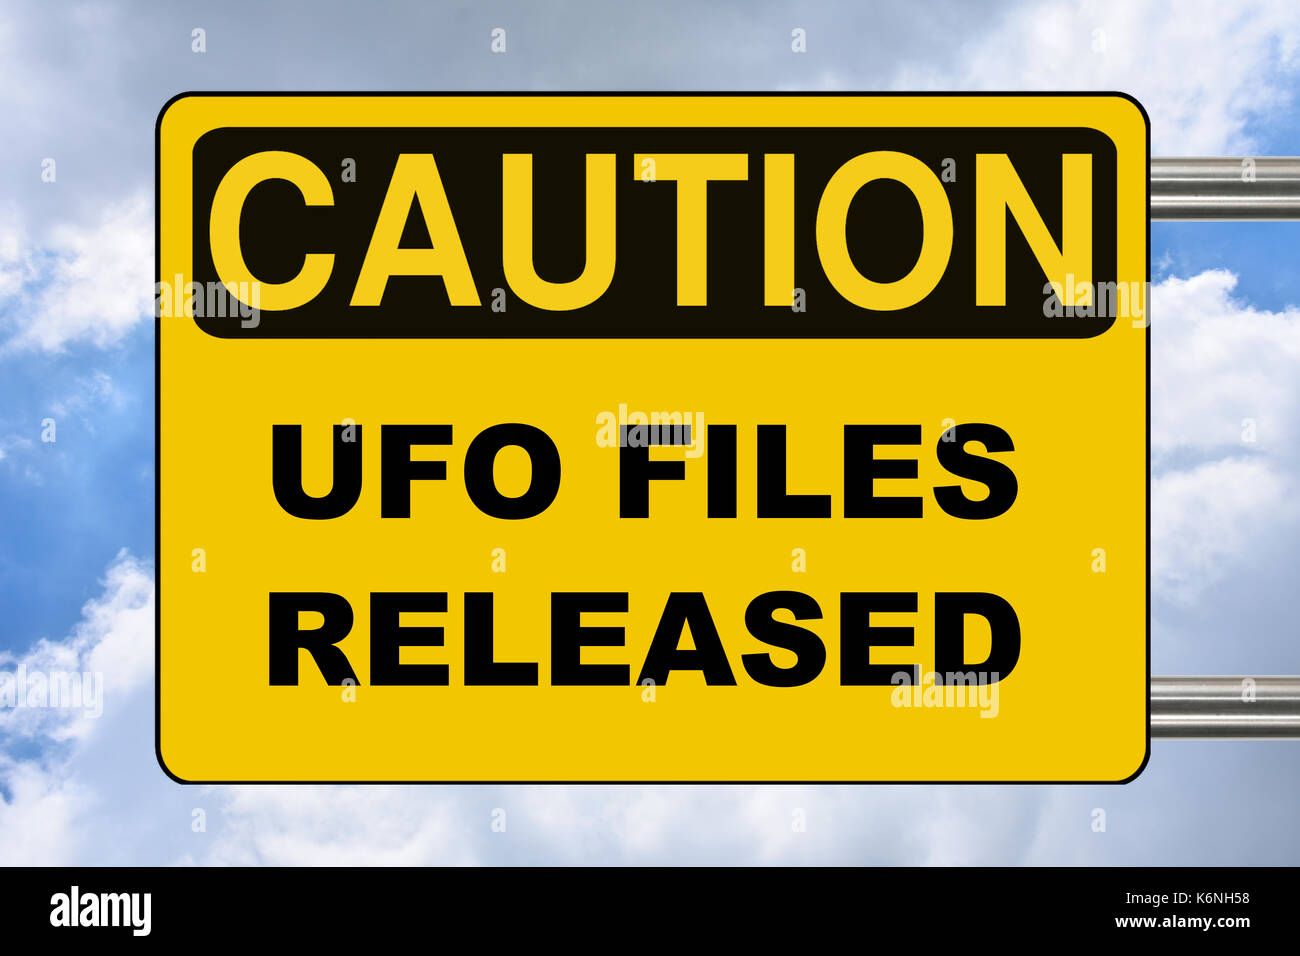 UFO files released, yellow caution street sign - Stock Image